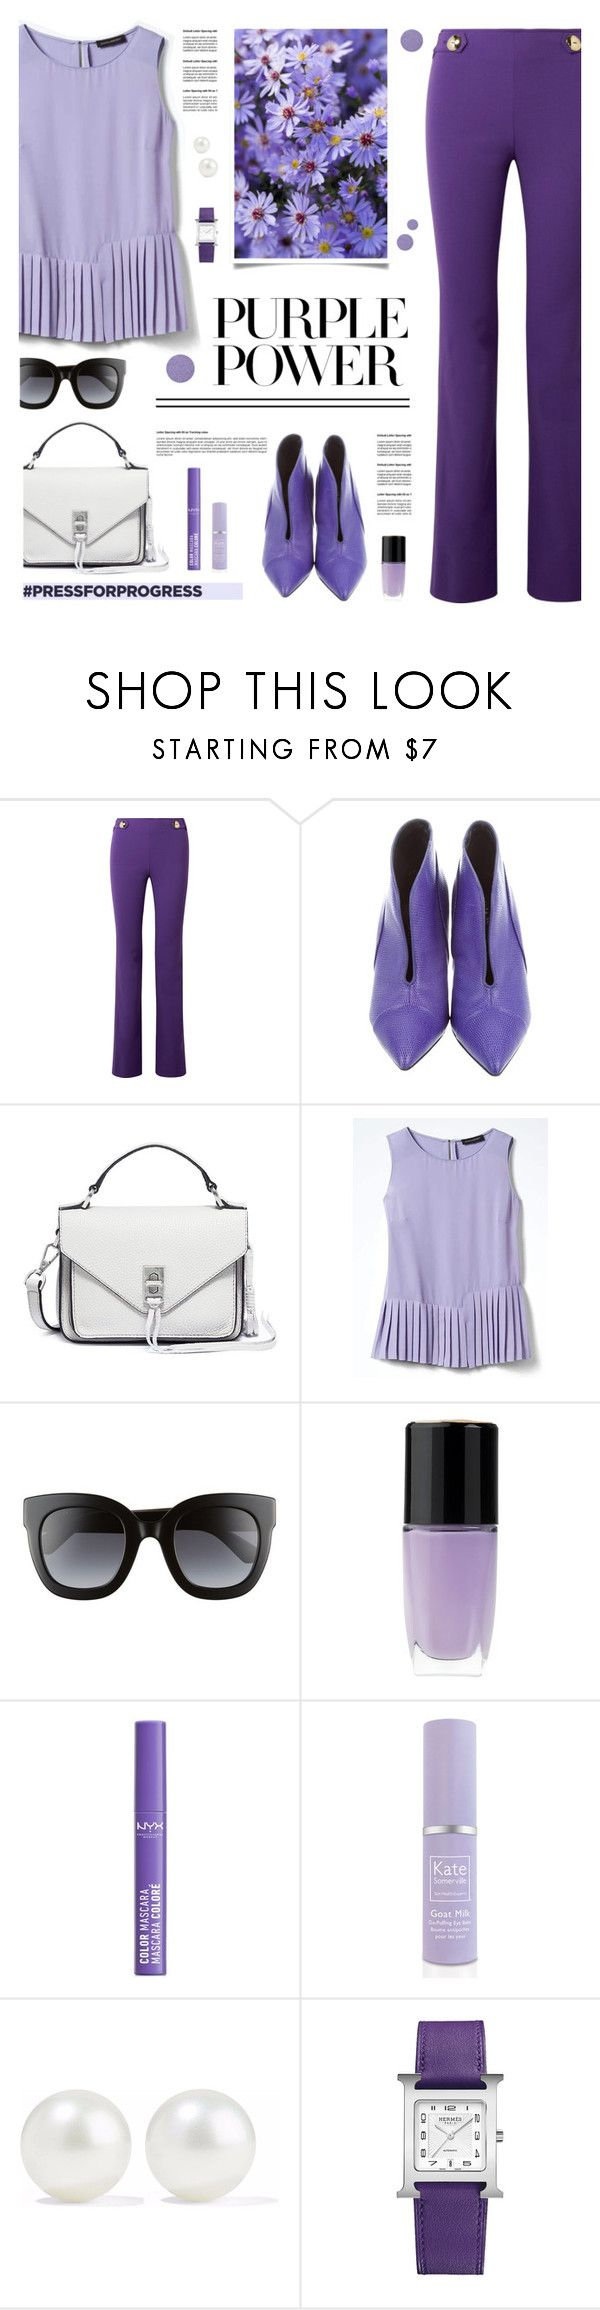 """""""Purple Power"""" by tamara-p ❤ liked on Polyvore featuring Emilio Pucci, Proenza Schouler, Rebecca Minkoff, Banana Republic, Gucci, Lancôme, NYX, Kate Somerville, Kenneth Jay Lane and Hermès"""